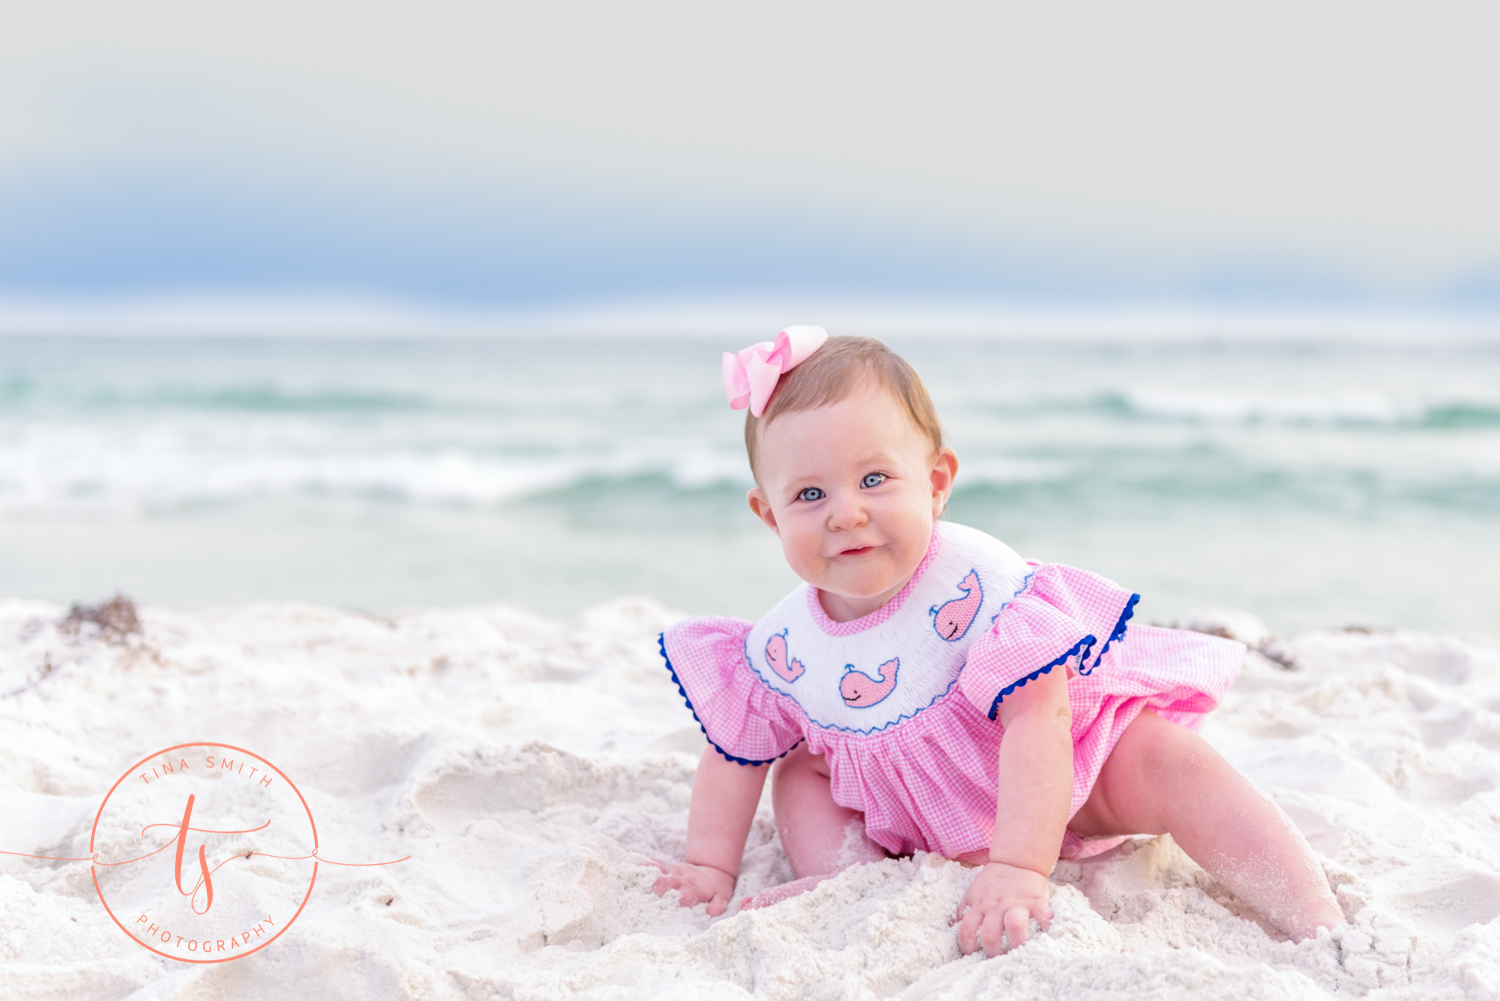 baby girl crawling on beach in dests dressed in pink dress